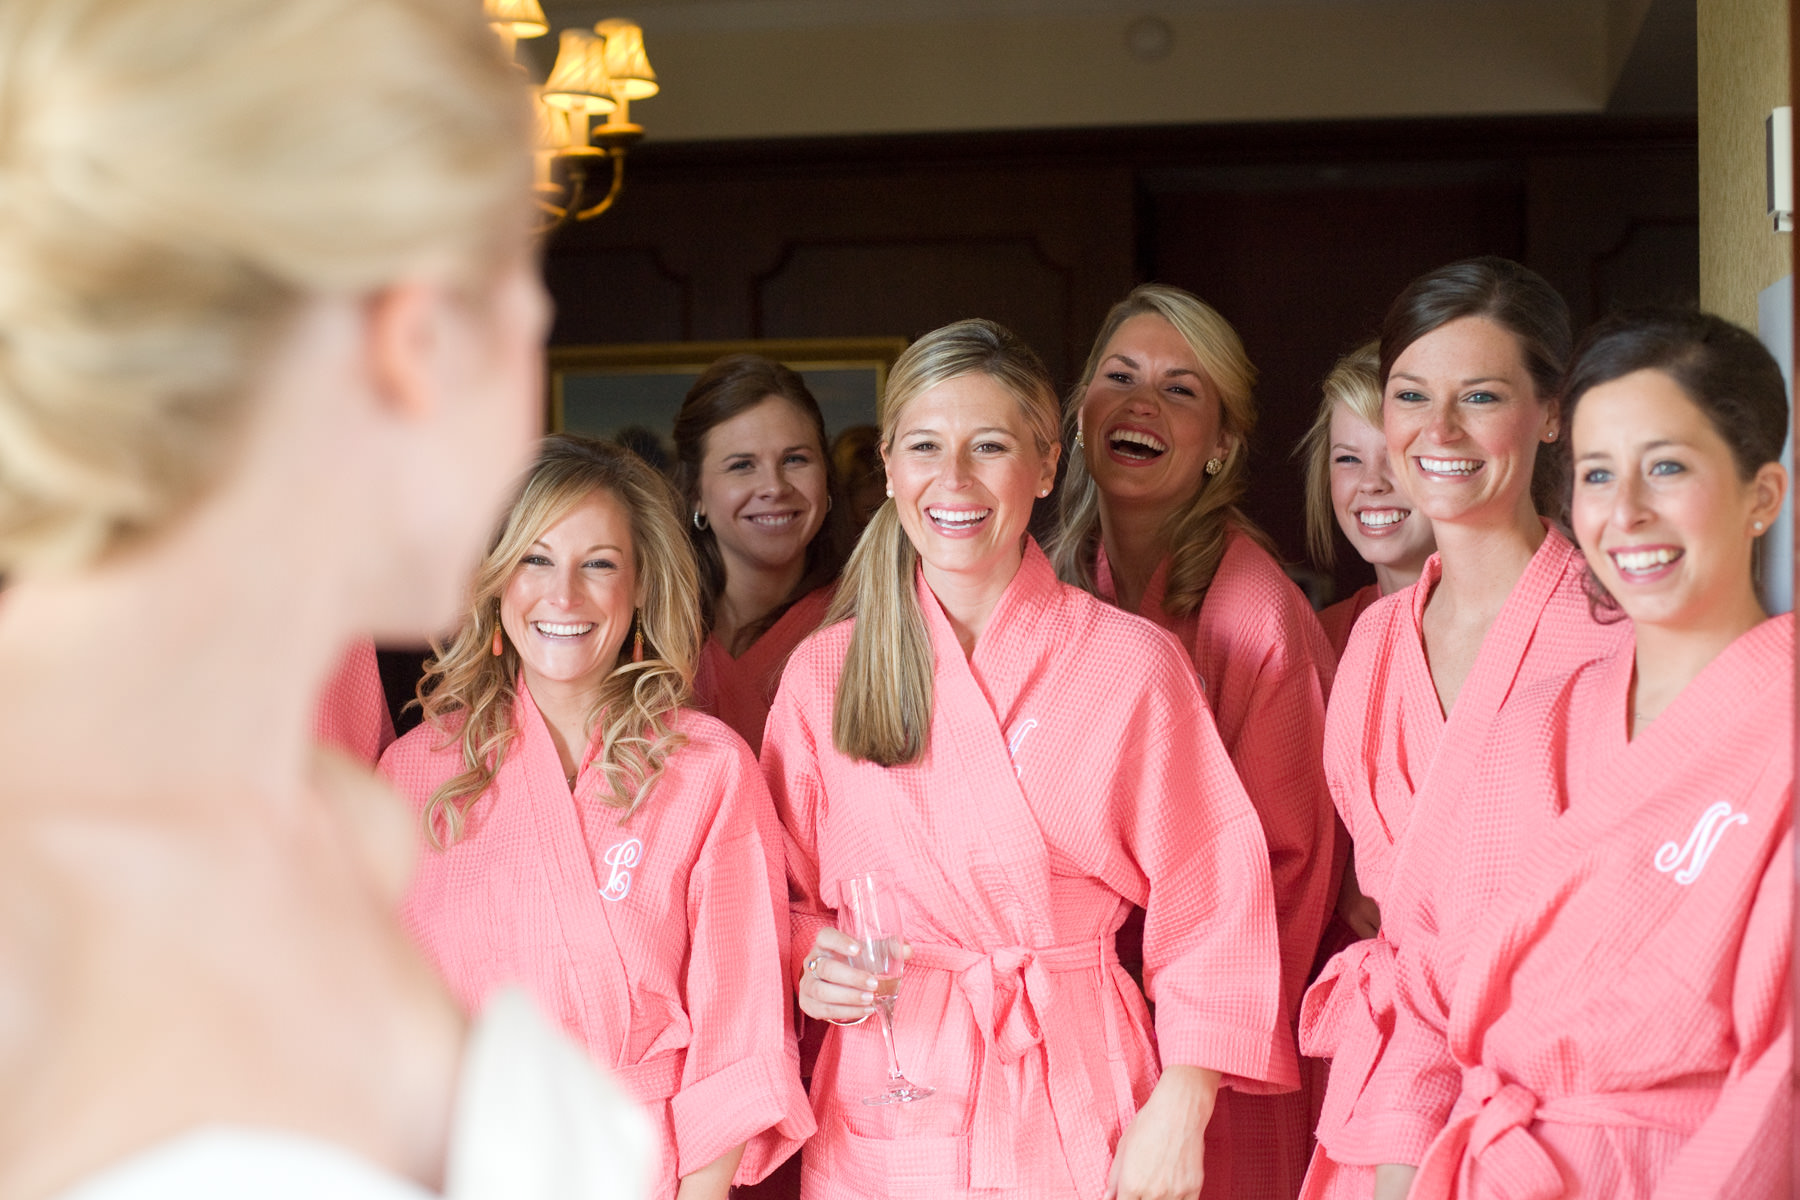 Bridesmaids in monogrammed bathrobes in the bridal suite at The Broadmoor.